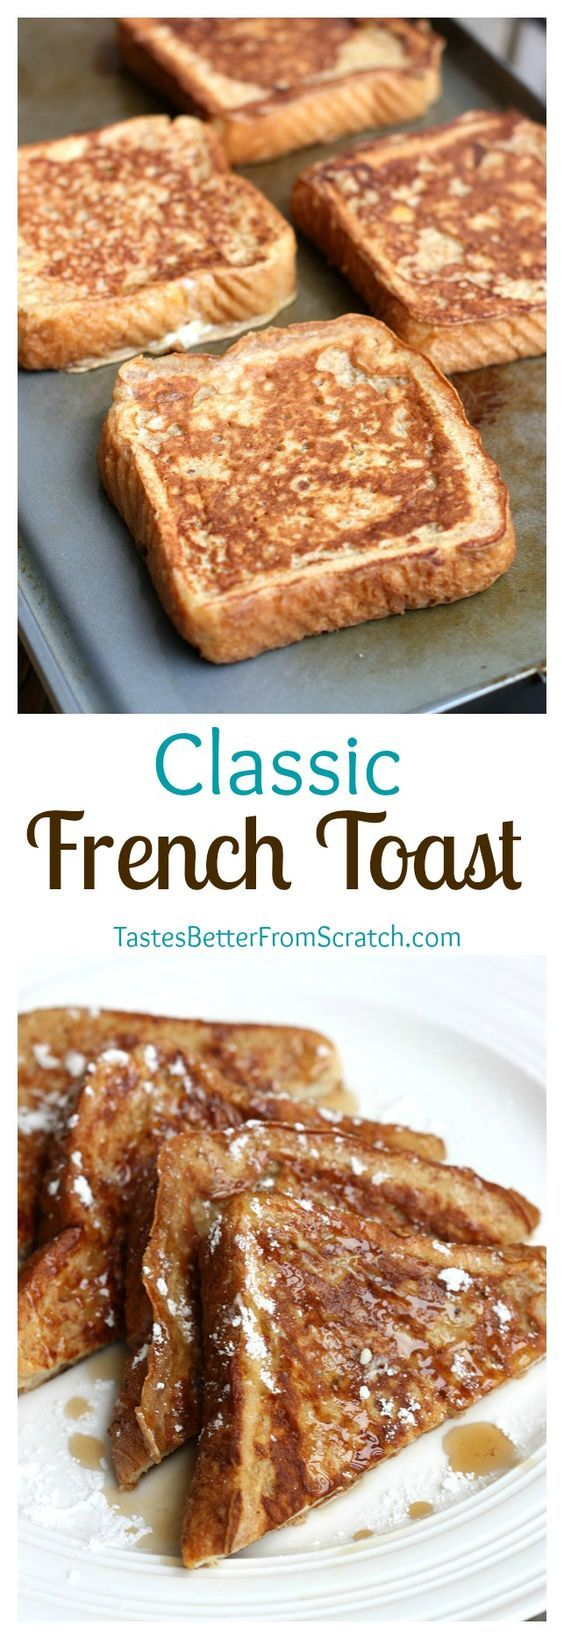 Photo of Classic French Toast